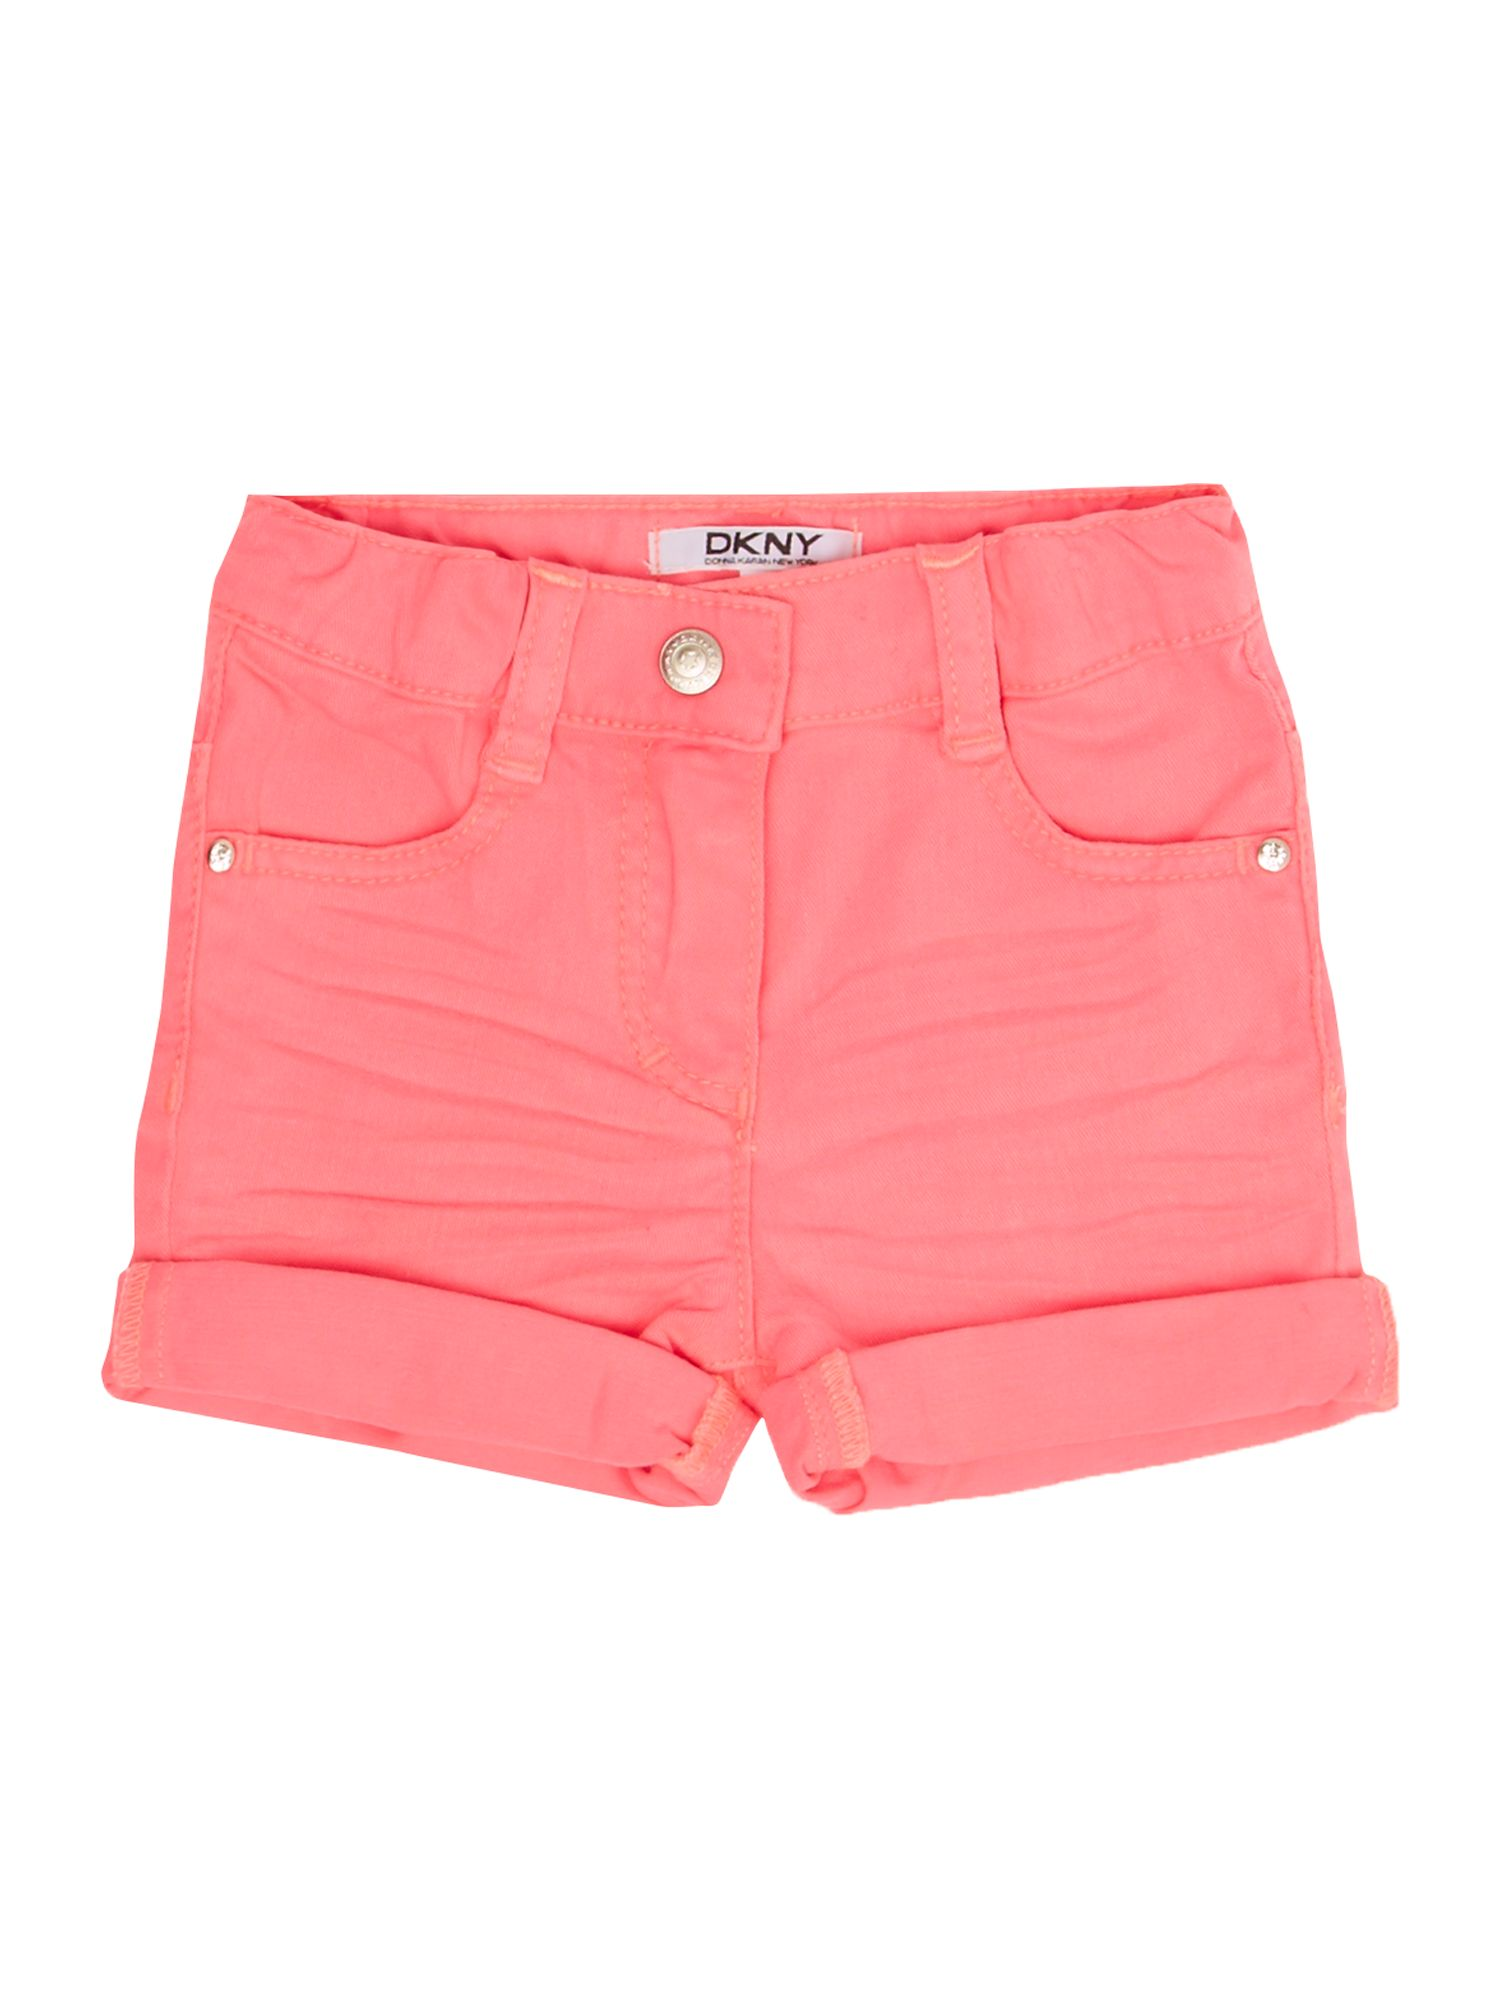 Girls twil shorts